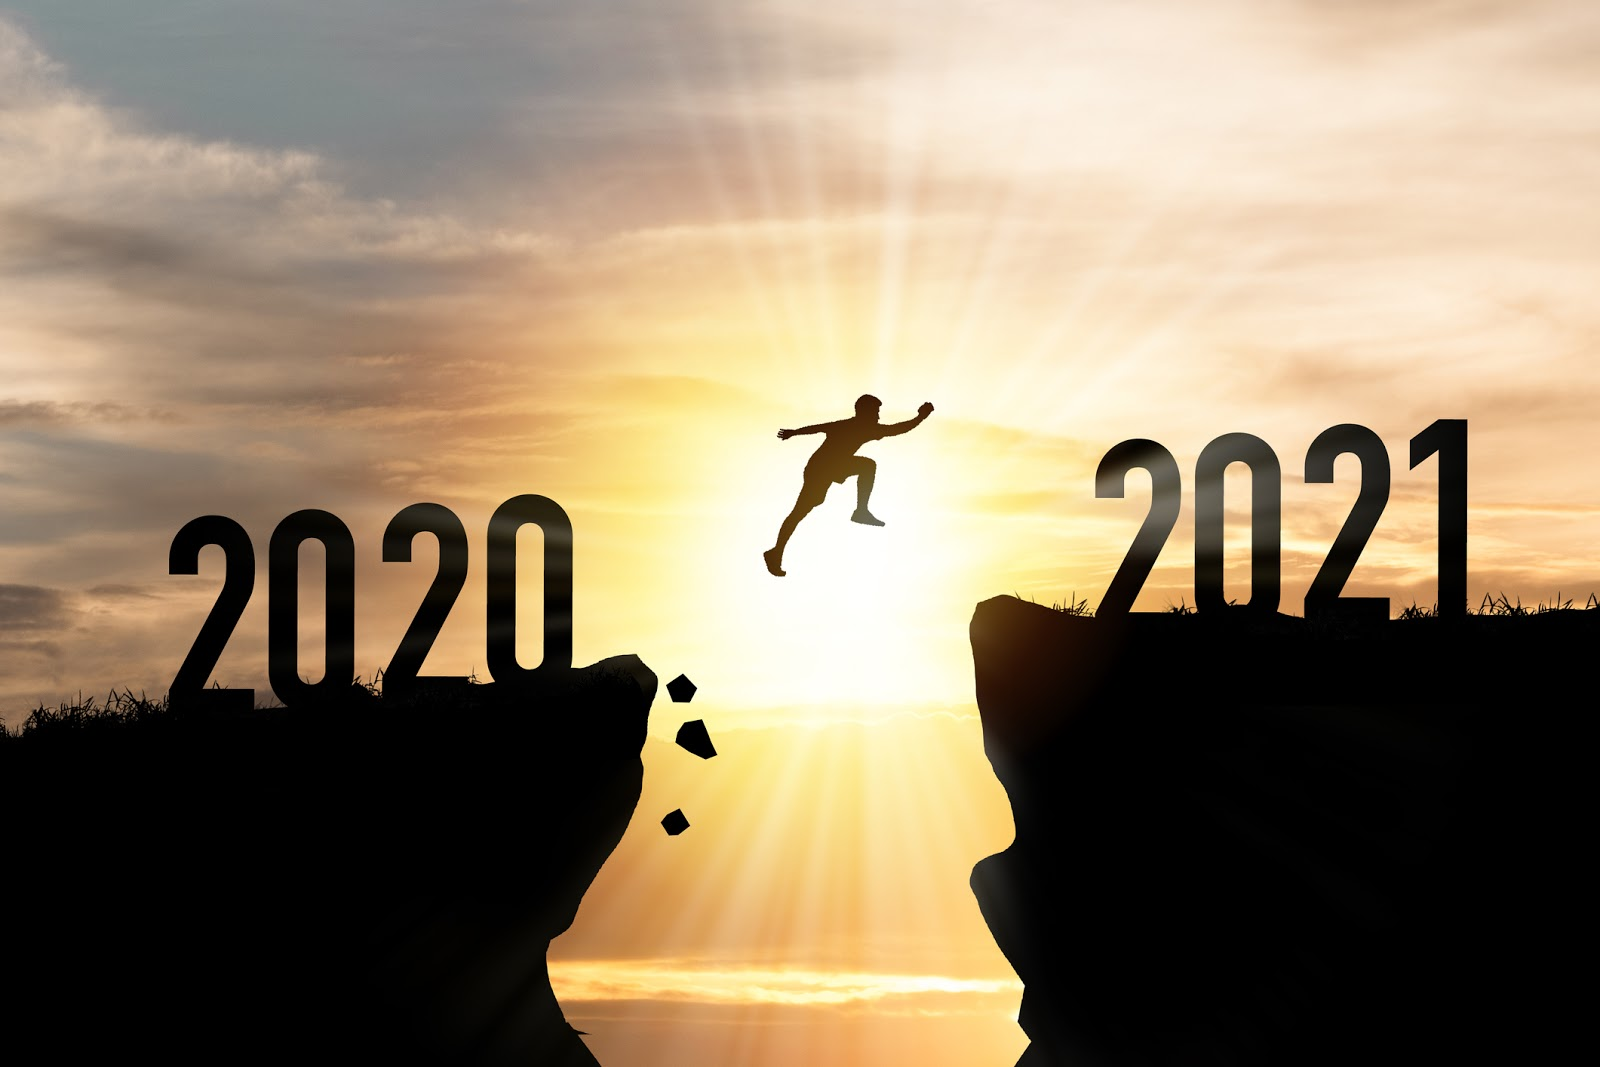 person leaping from 2020 to 2021